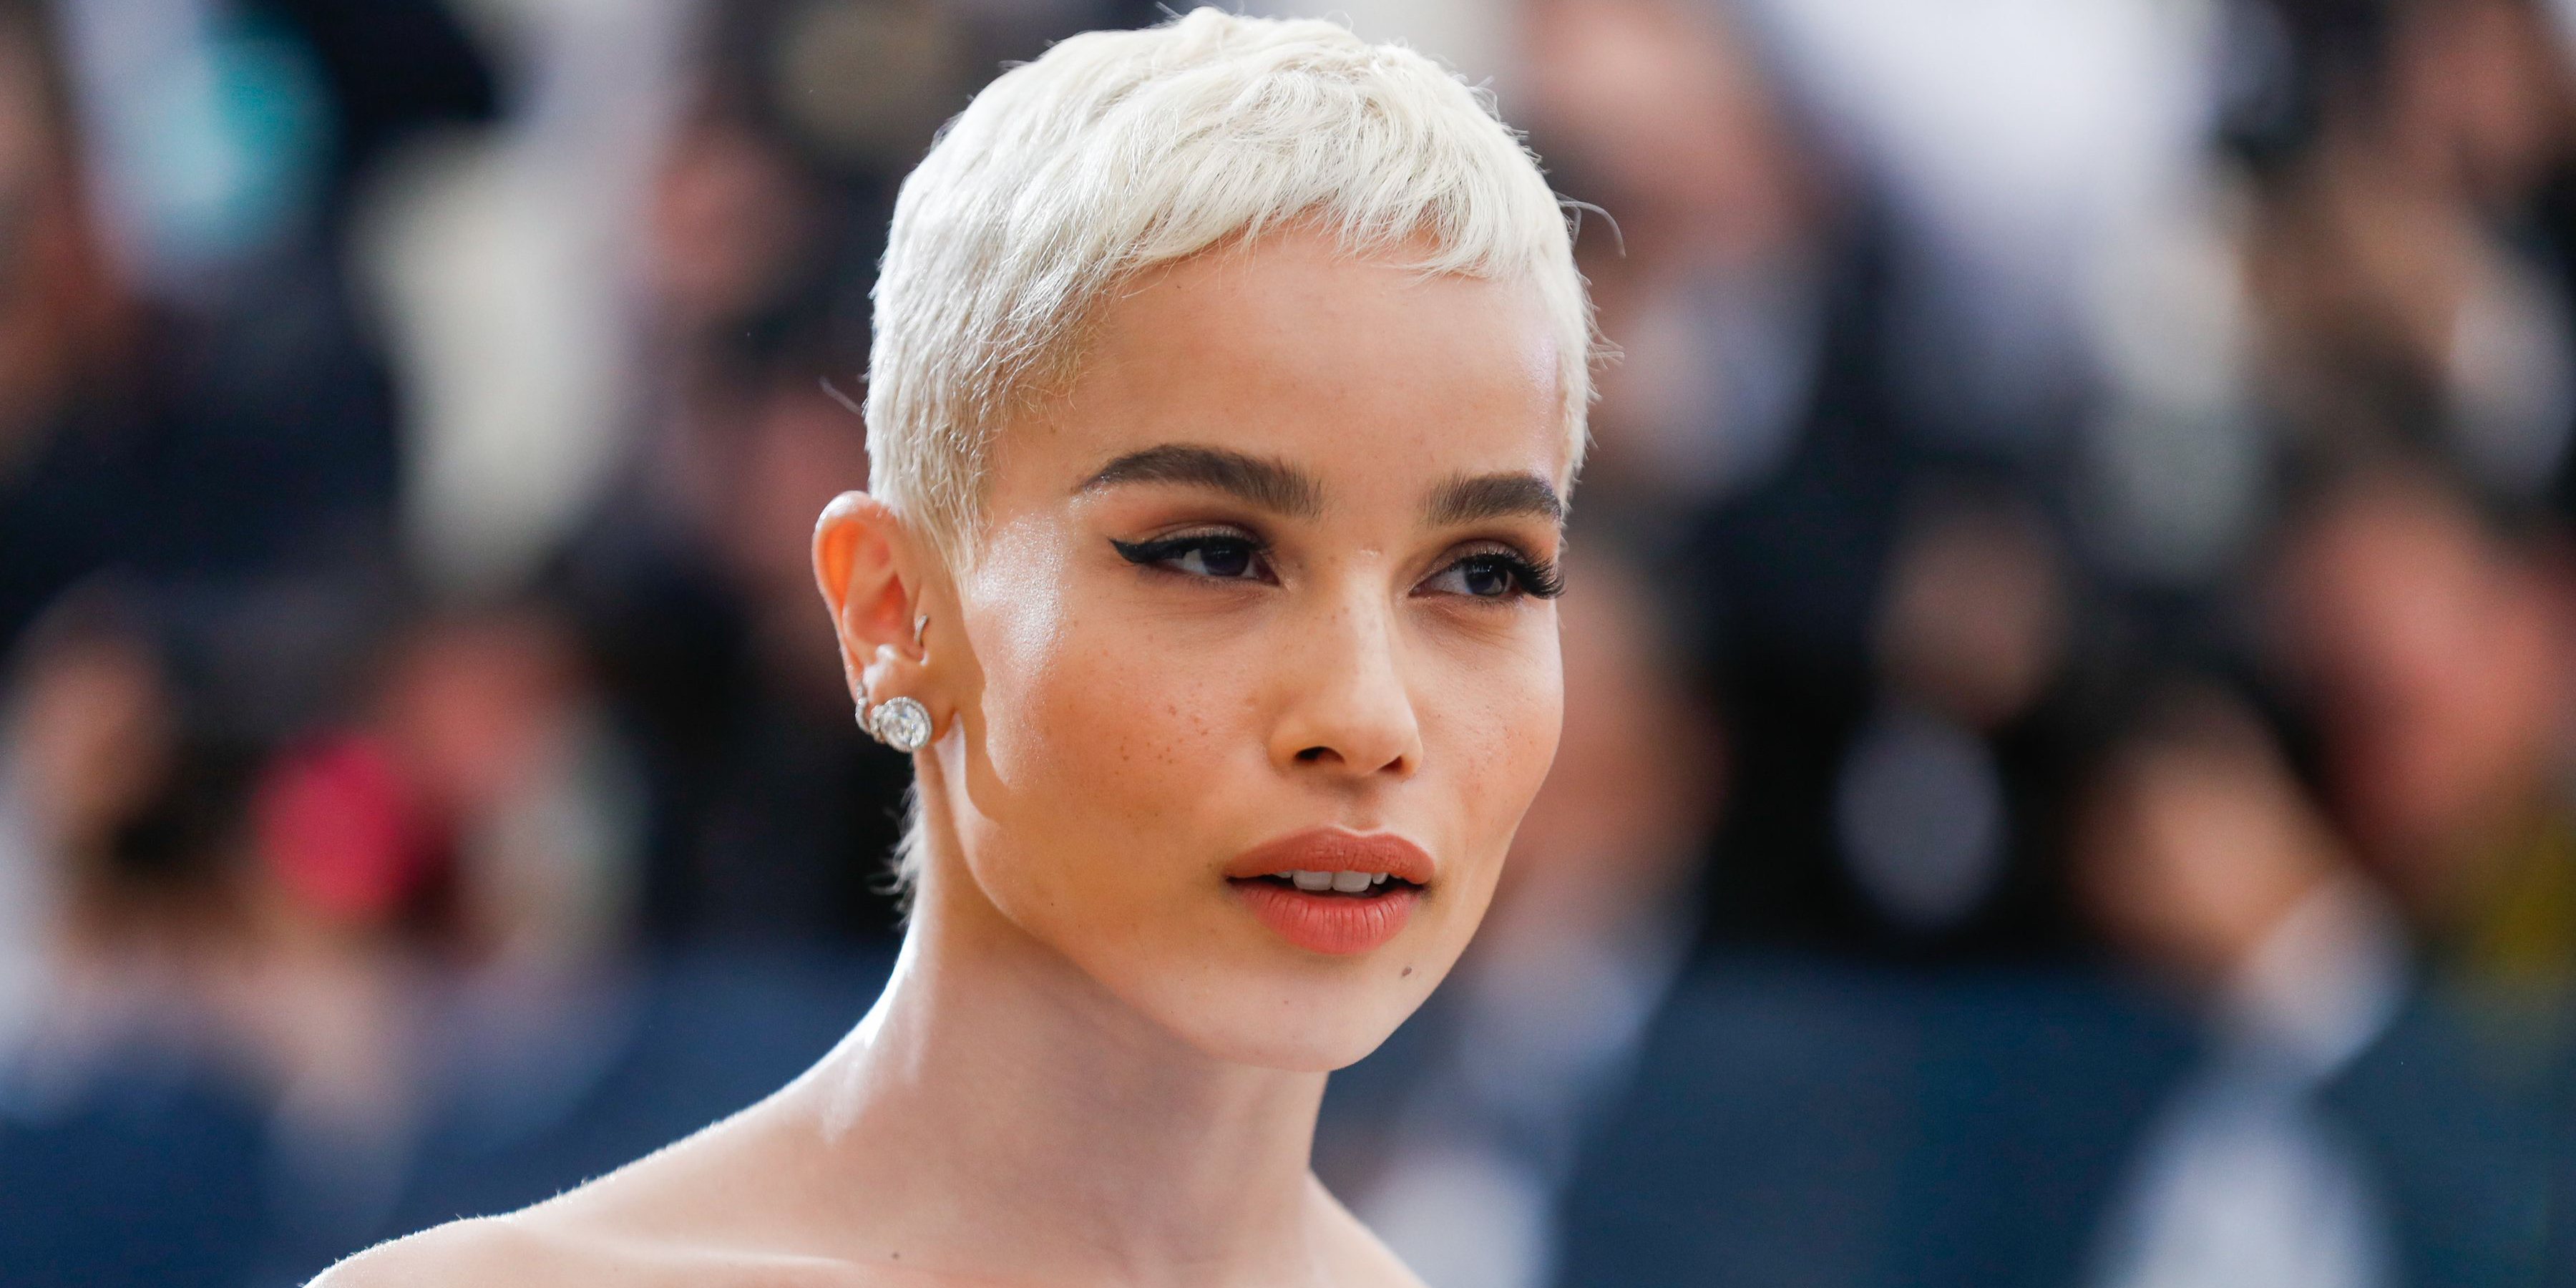 Coiffure Zoe Kravitz 29 Best Short Hair Styles Bobs Pixie Cuts And More